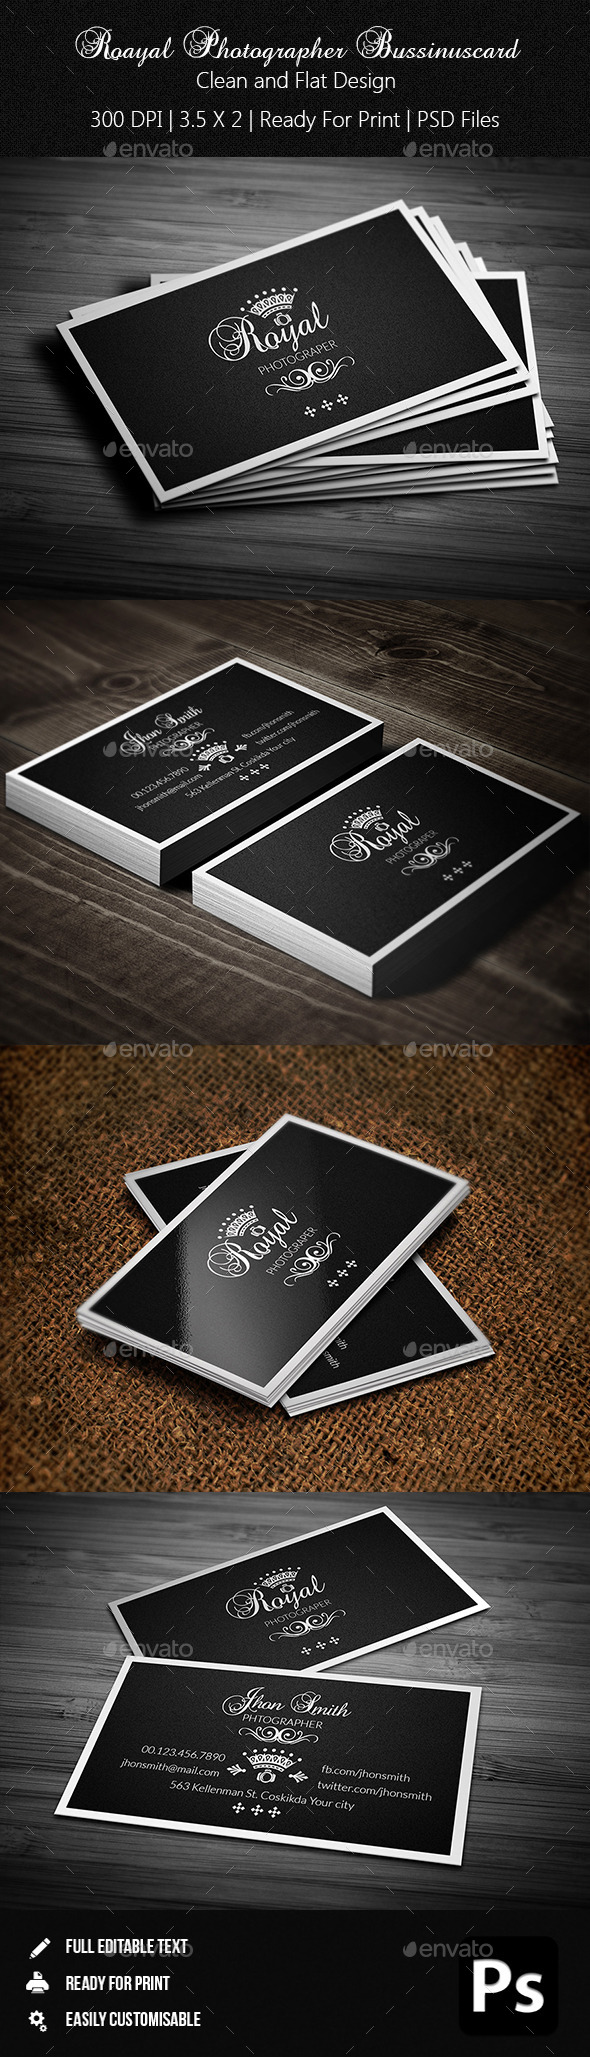 GraphicRiver Creative Photographer Business Card 03 10715825